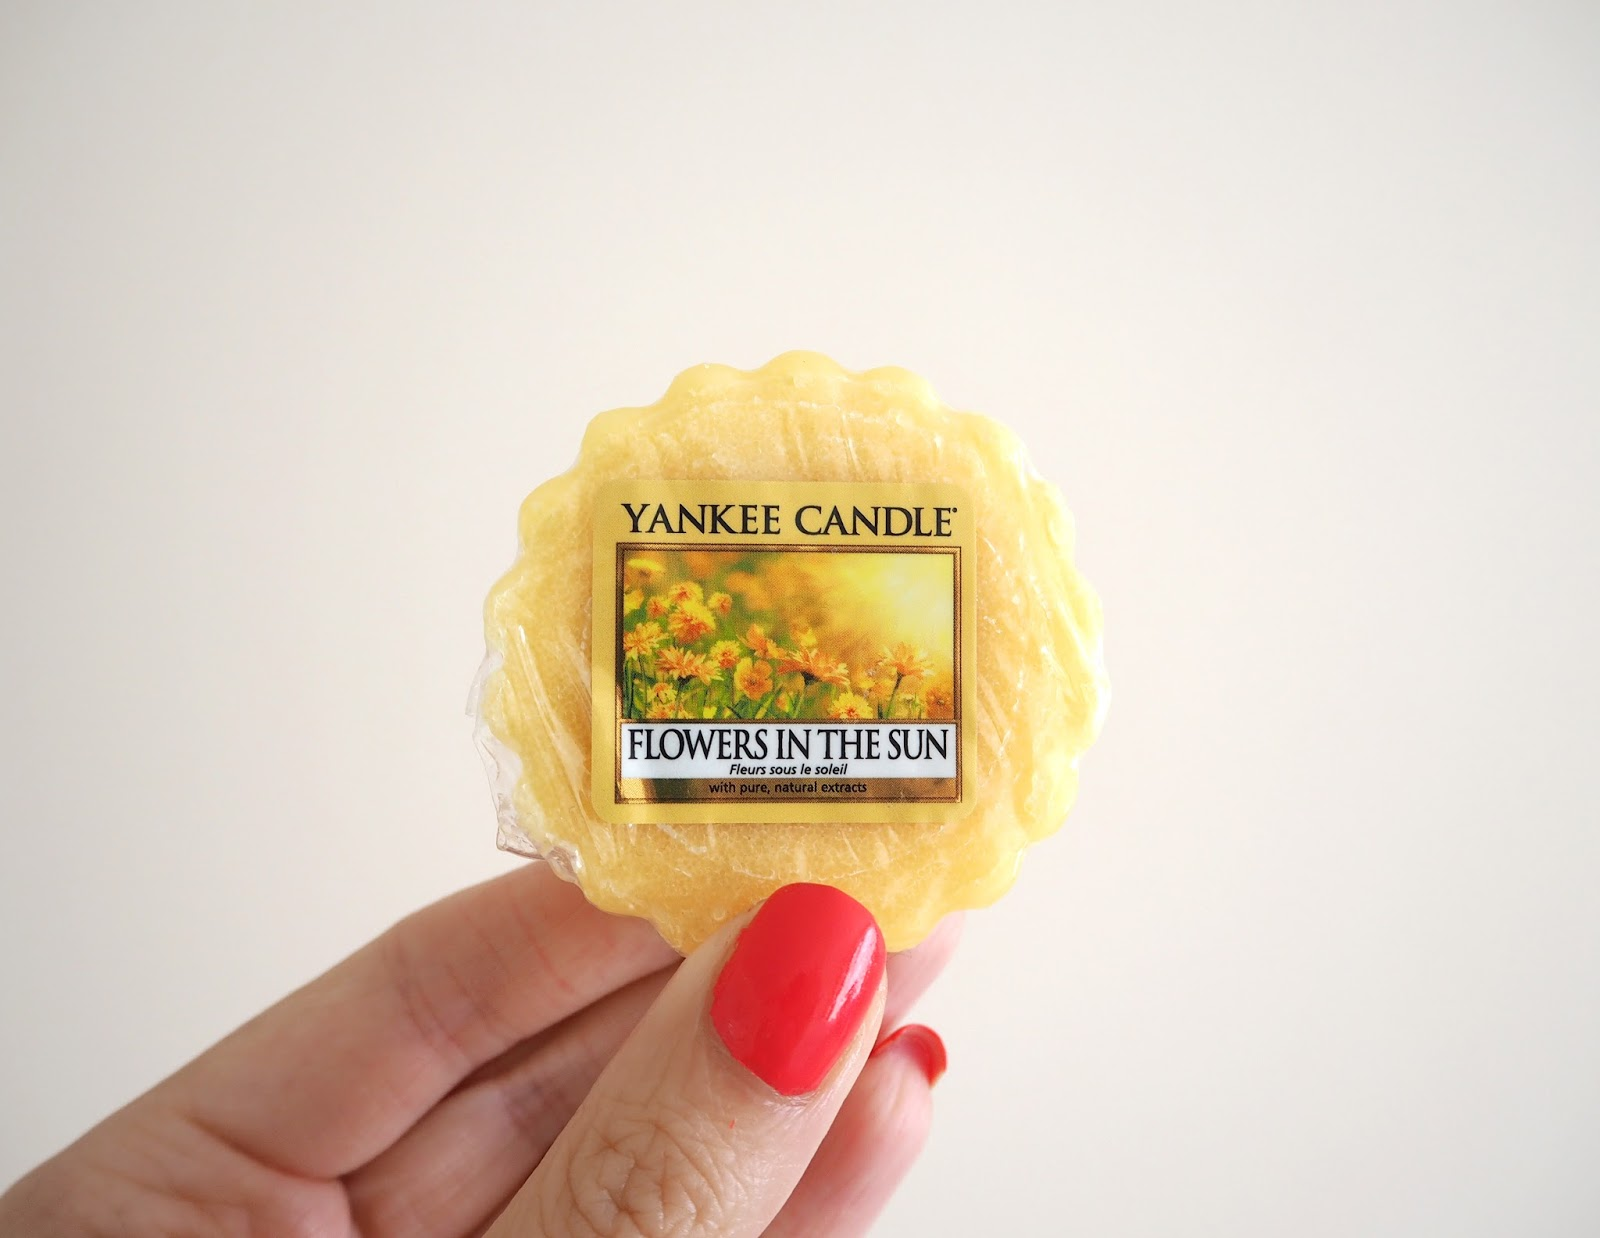 Yankee Candle UK Warm Summer Nights Q3 2016 Fragrance Review, Katie Kirk Loves